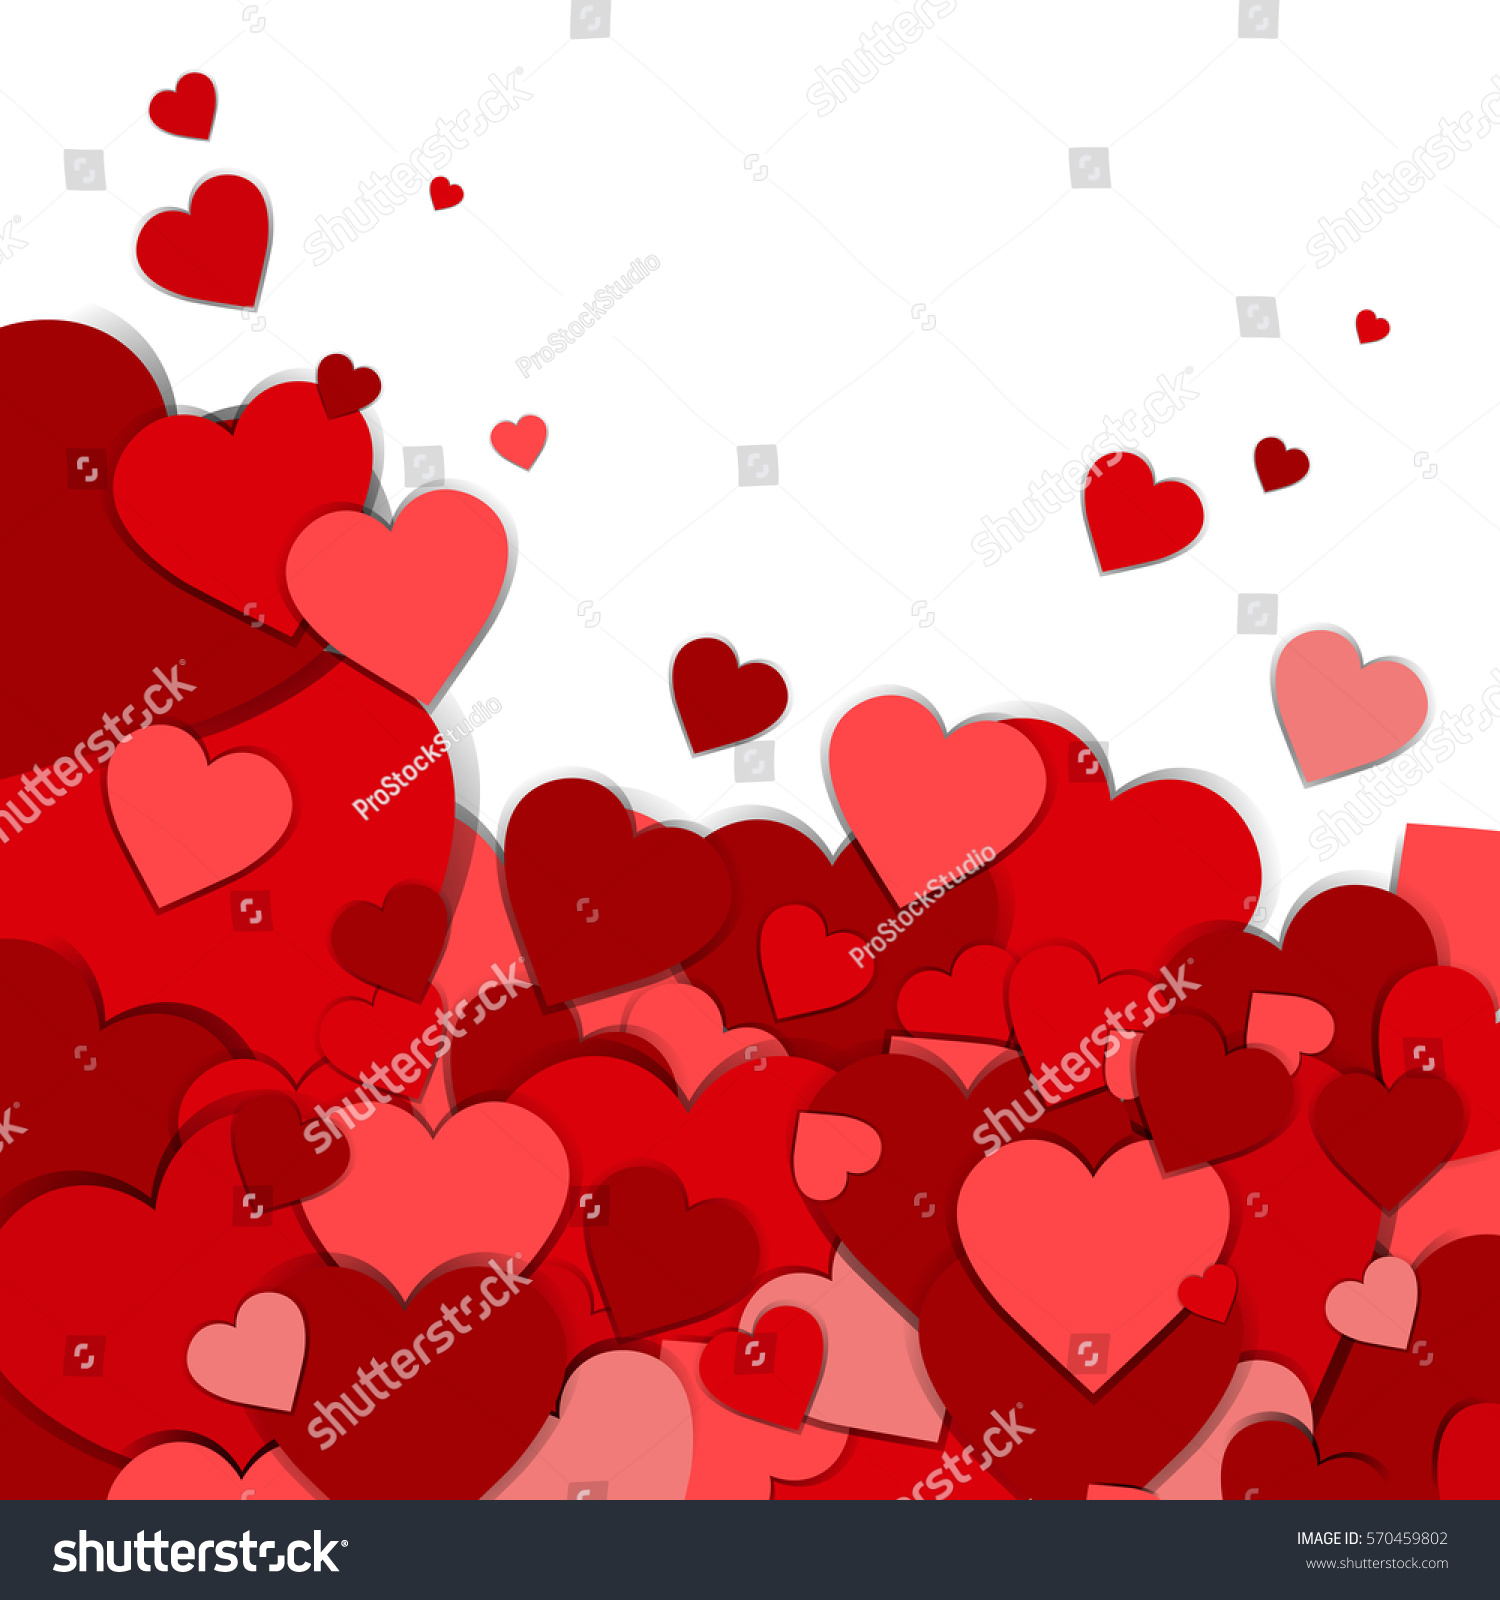 Valentine Day Gift Card Holiday Love Stock Vector 570459802   Shutterstock